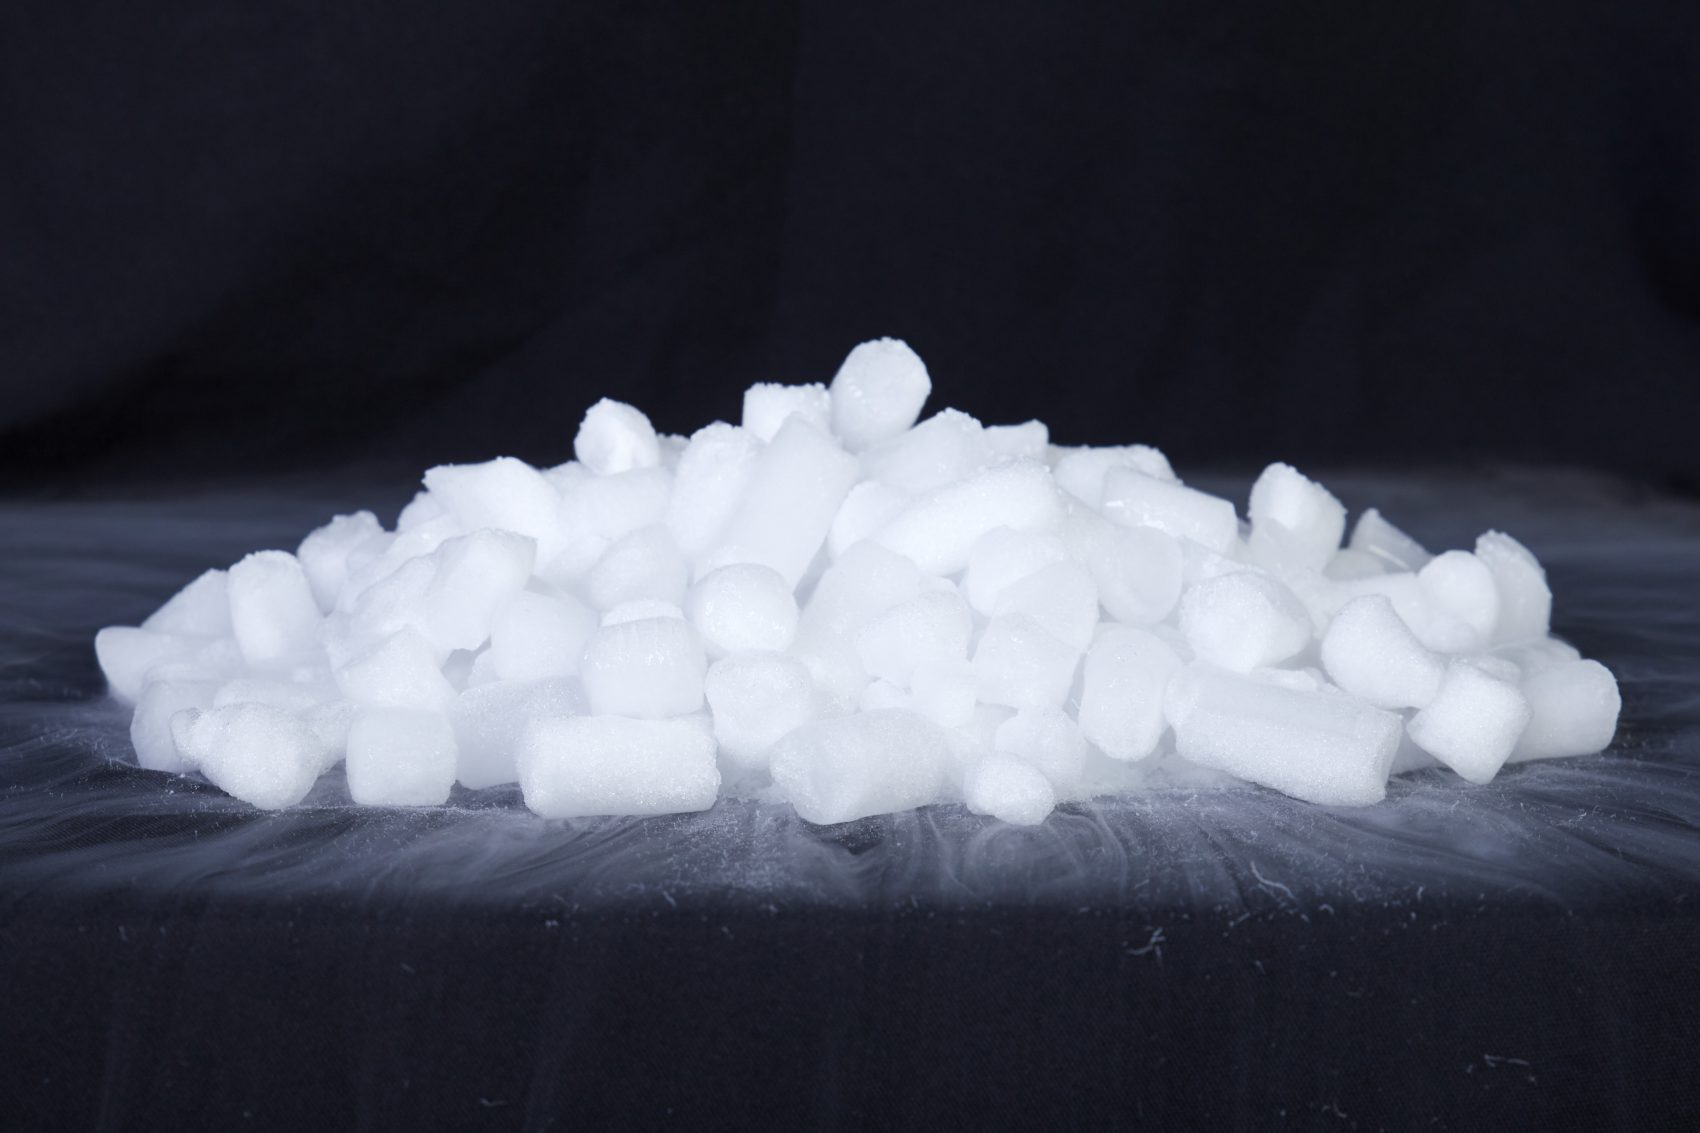 Opinions on dry ice